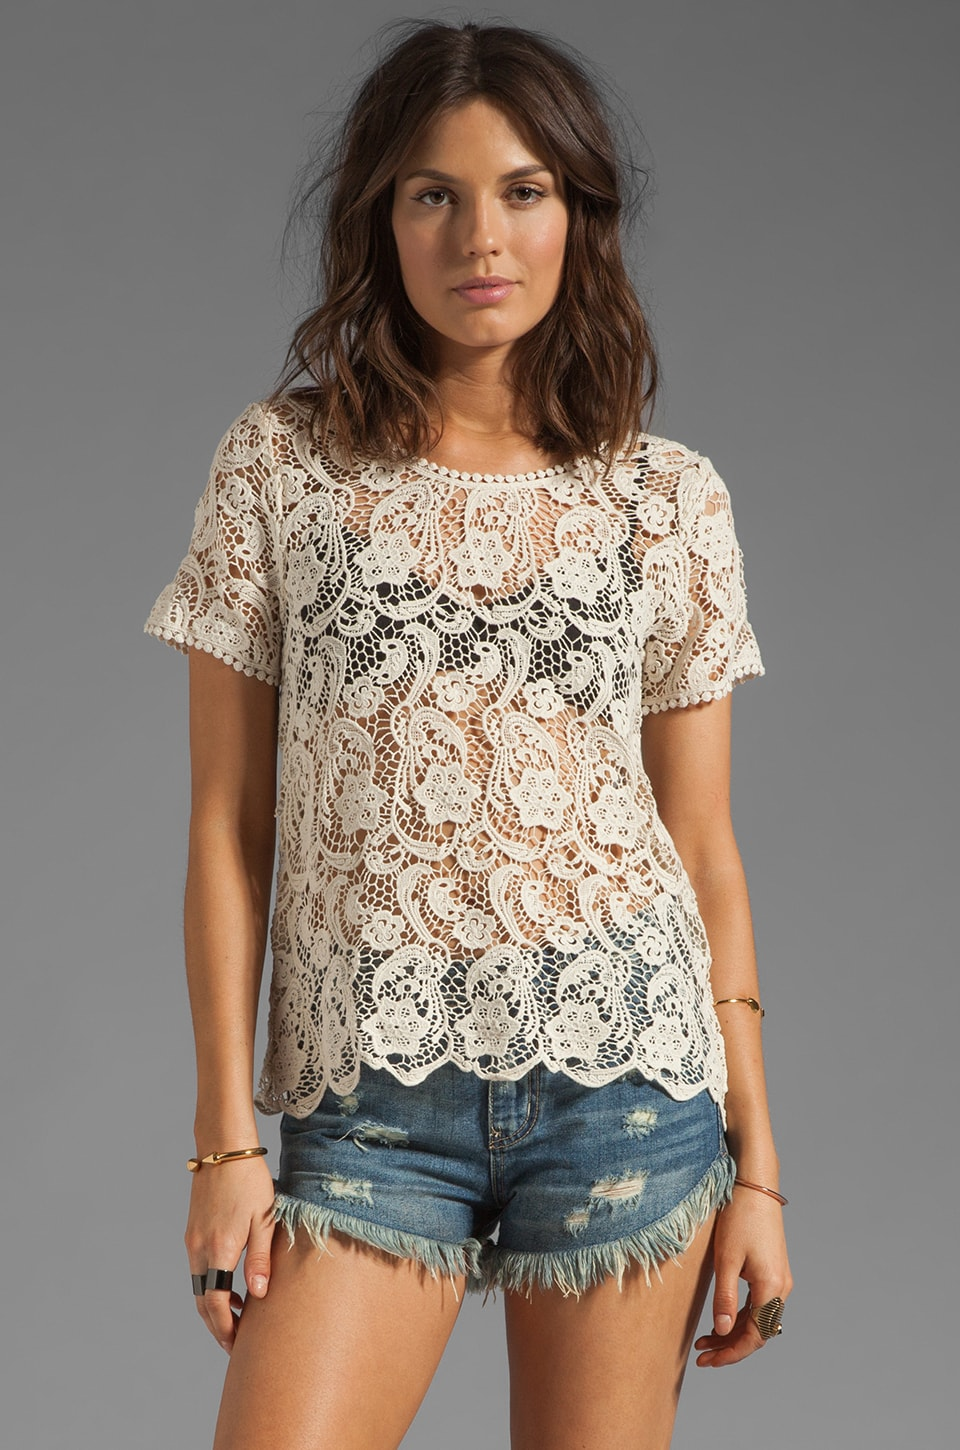 Joie Devine Crochet Lace Top in Off White